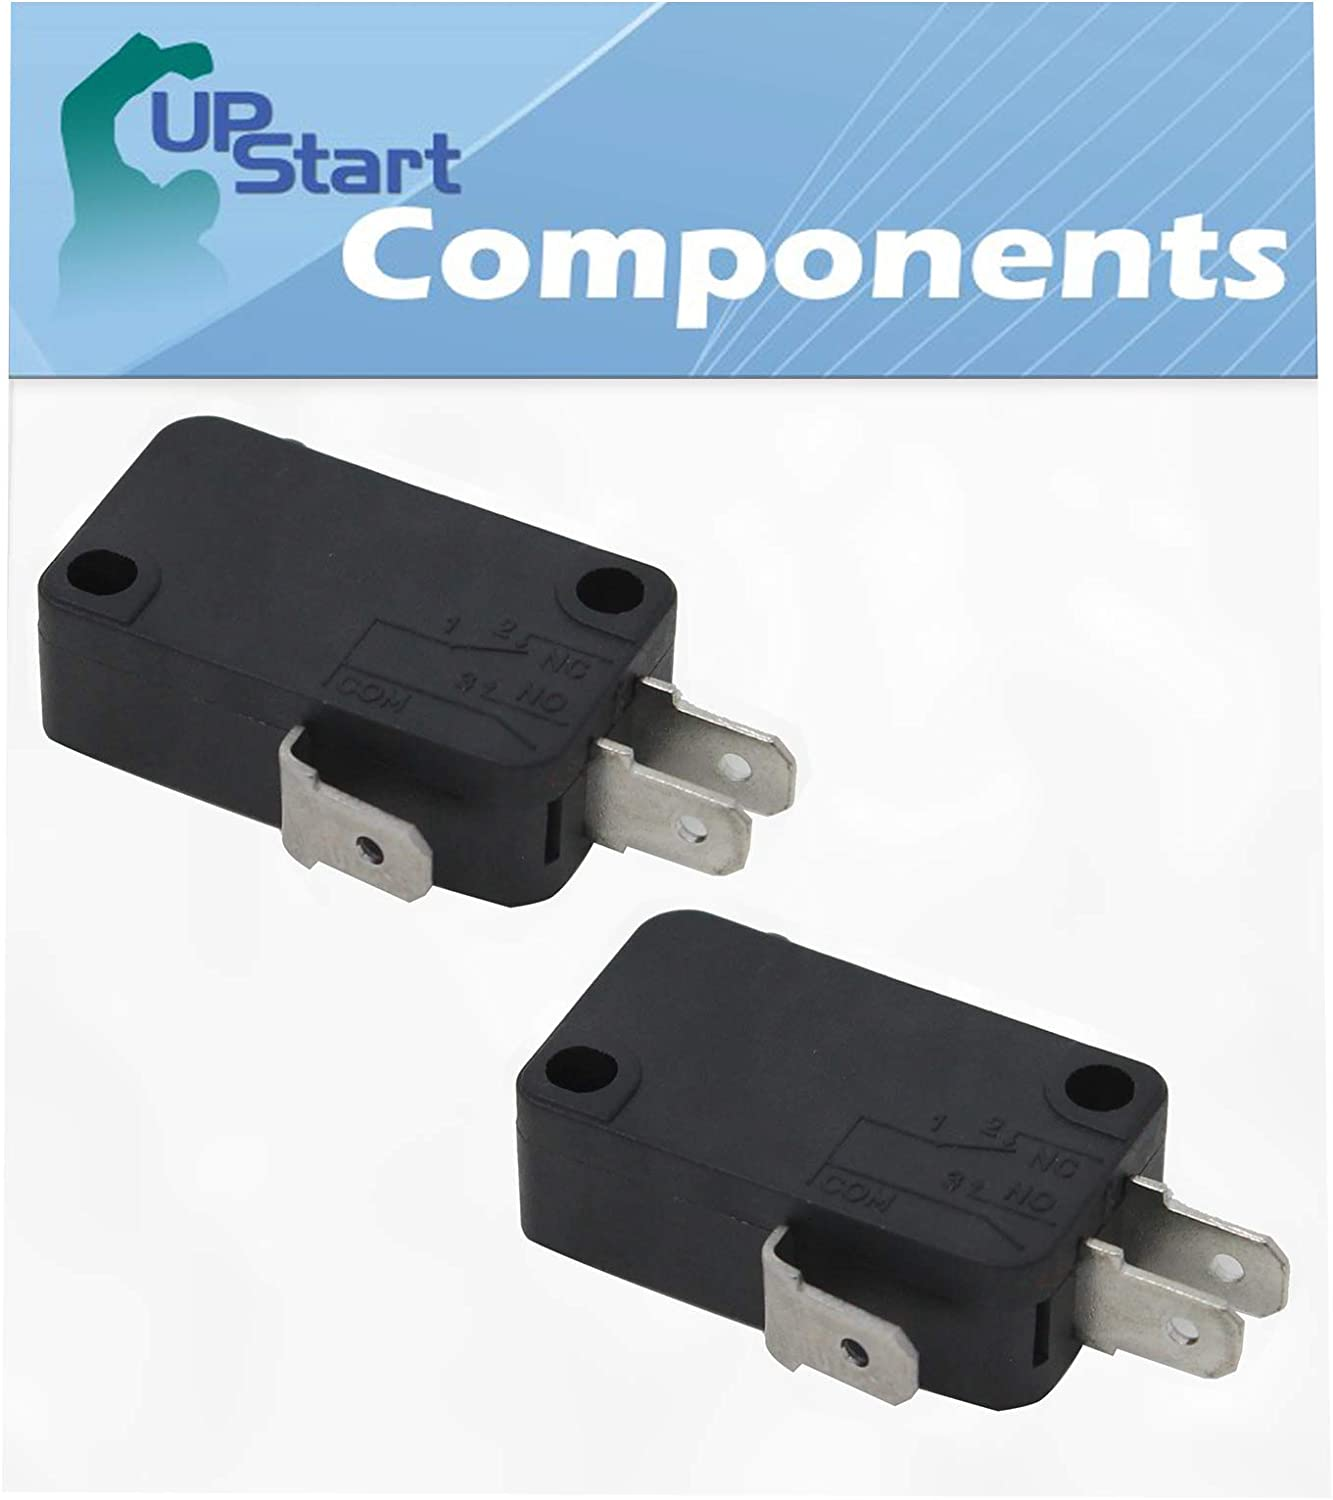 2-Pack W10269458 Microwave Door Switch Replacement for Maytag MMV5208WB1 - Compatible with W10269458 Door Switch